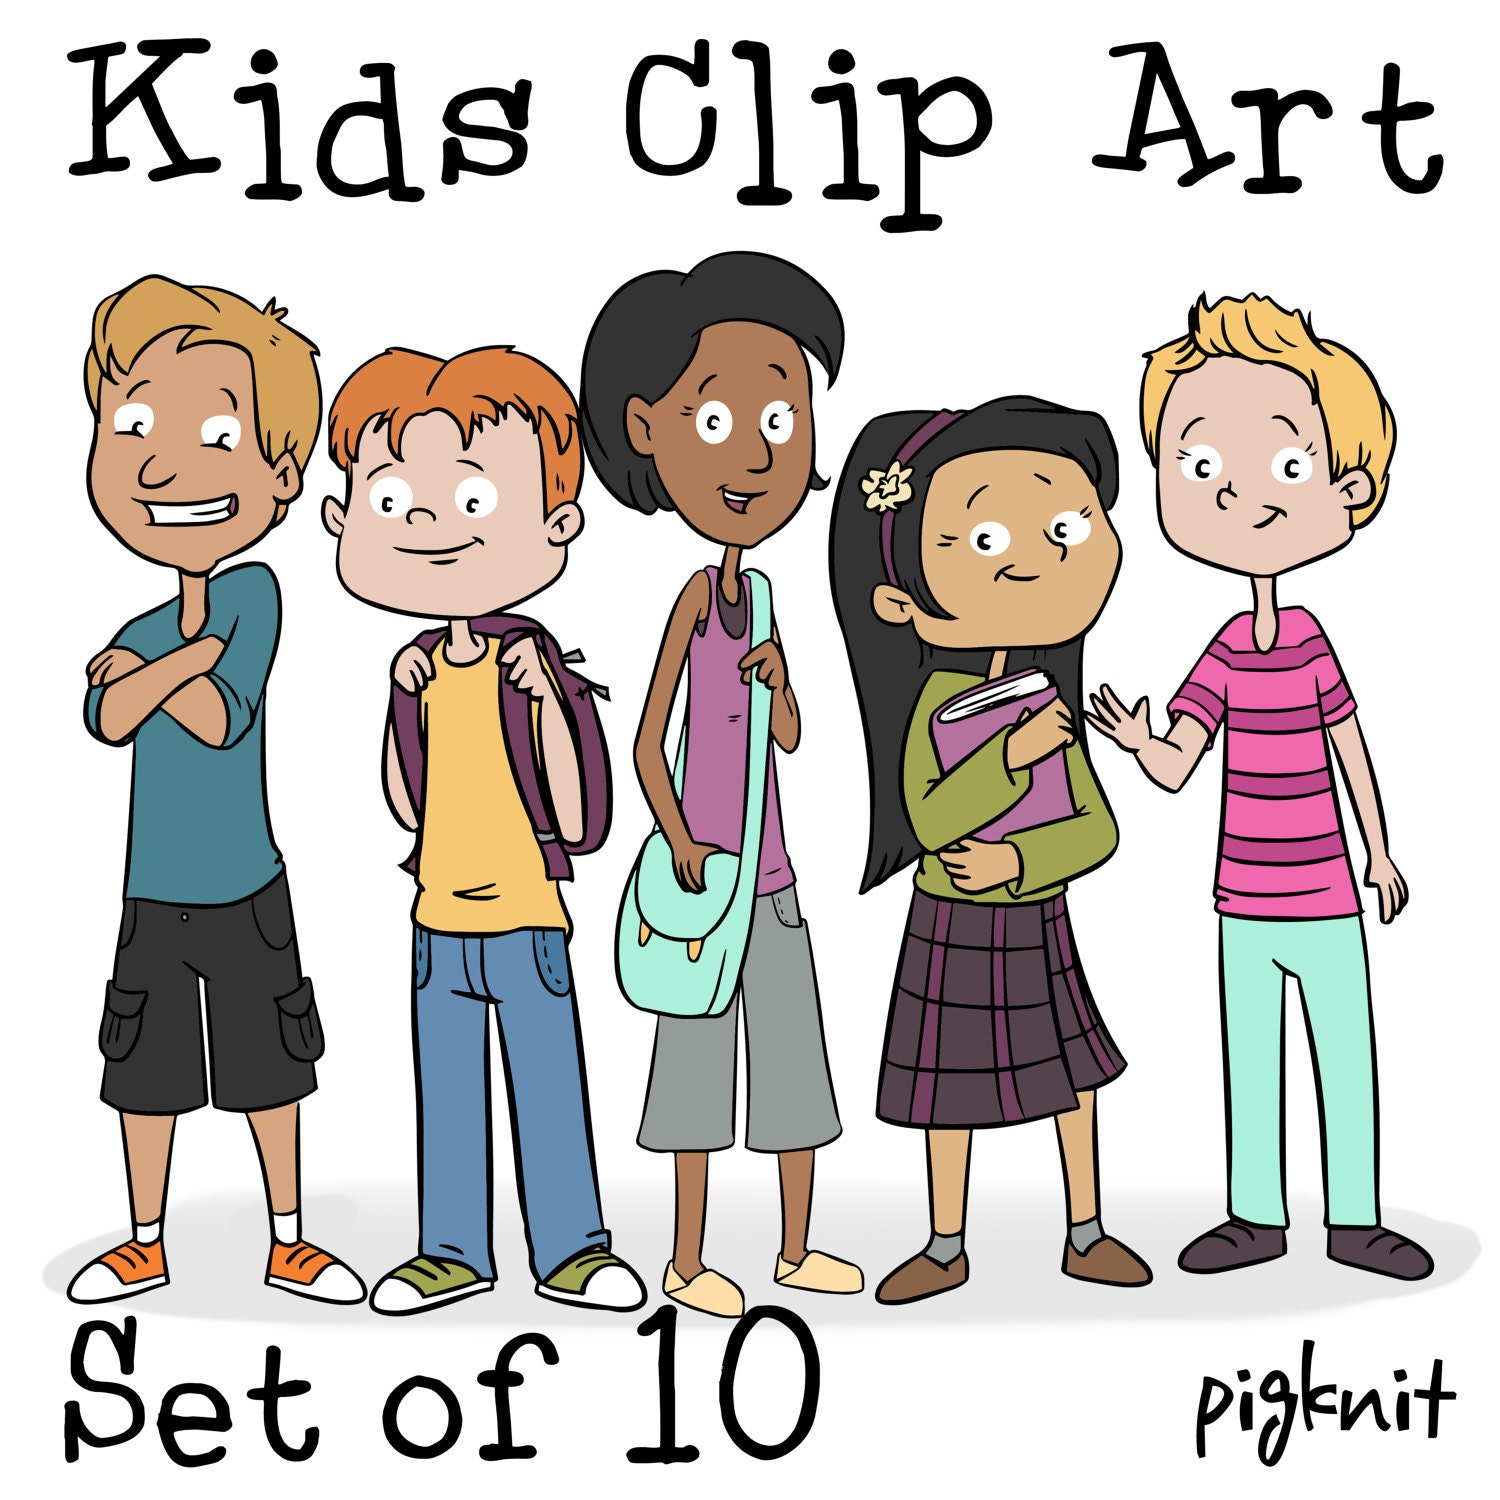 middle school clipart - photo #40